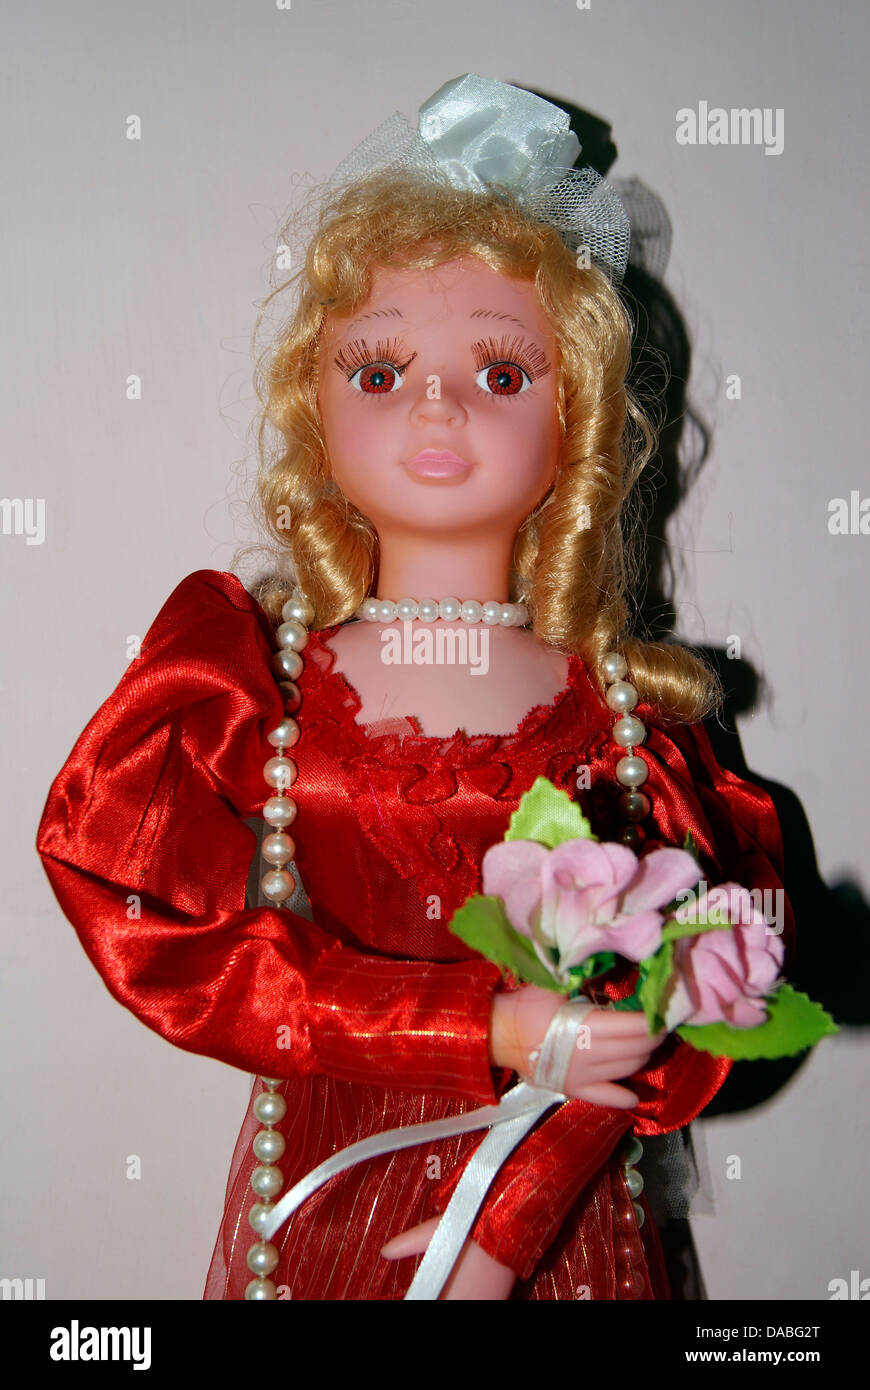 Beautiful Doll Girl Holding flowers - Stock Image